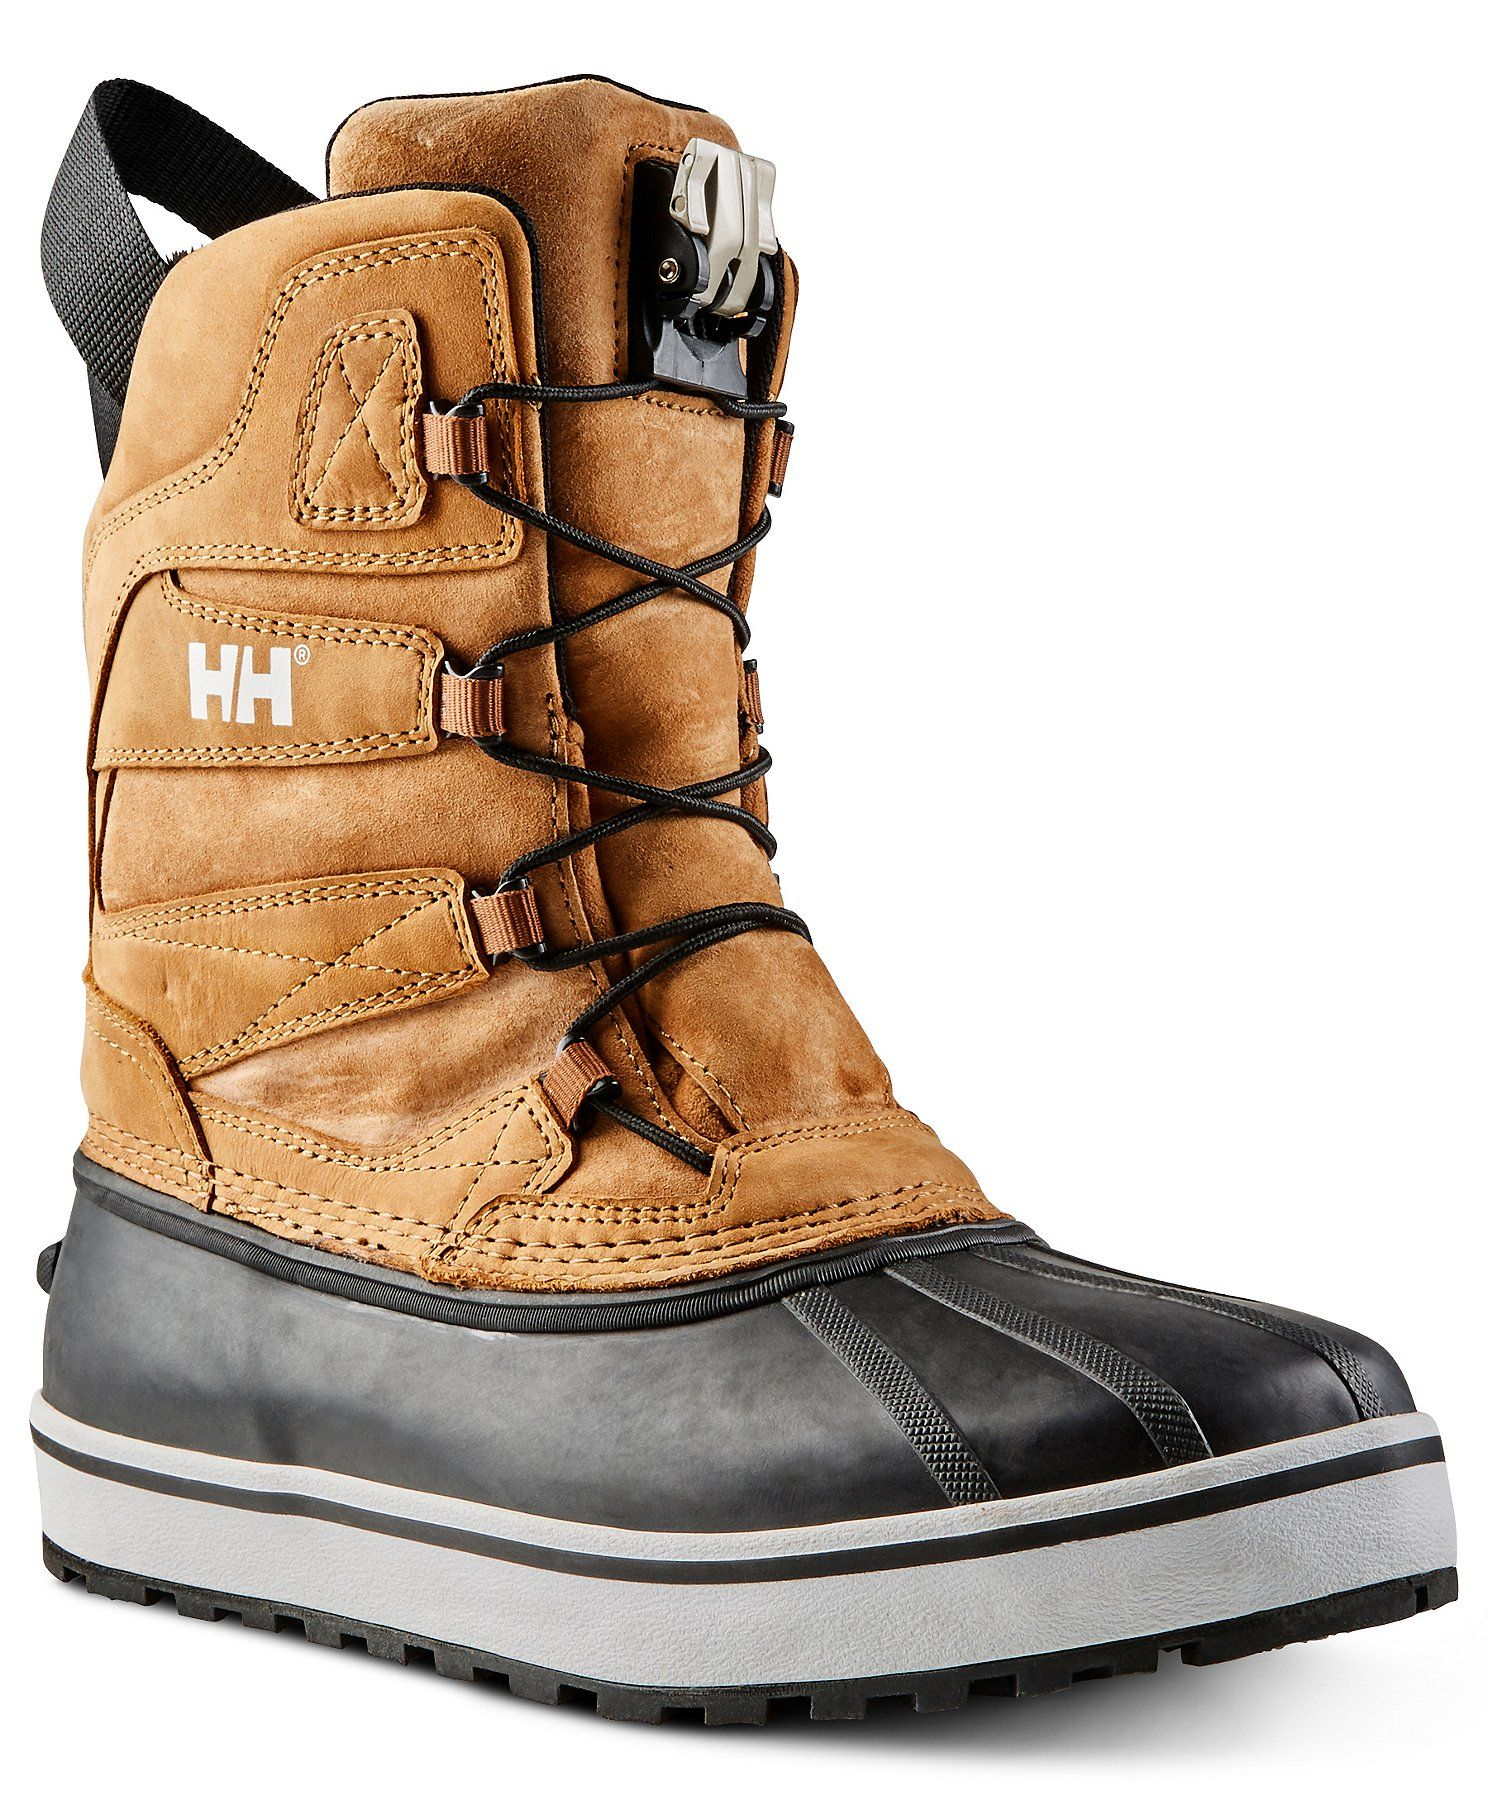 MEN'S LOCKDOWN ICEFX WINTER BOOTS BROWN | Mark's | Brown